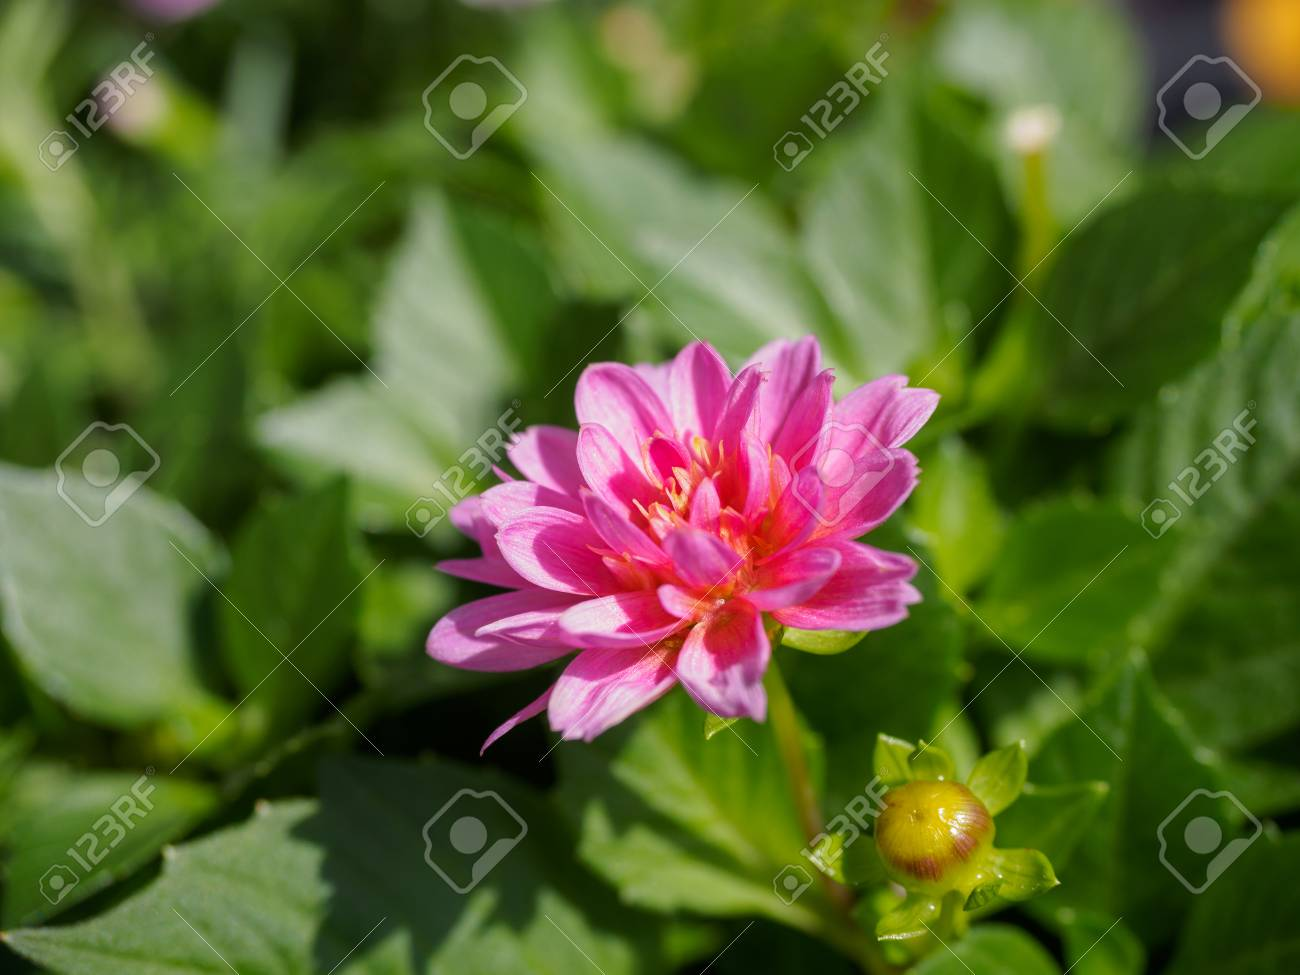 Field Of Colorful Flowers In Spring Season Stock Photo Picture And